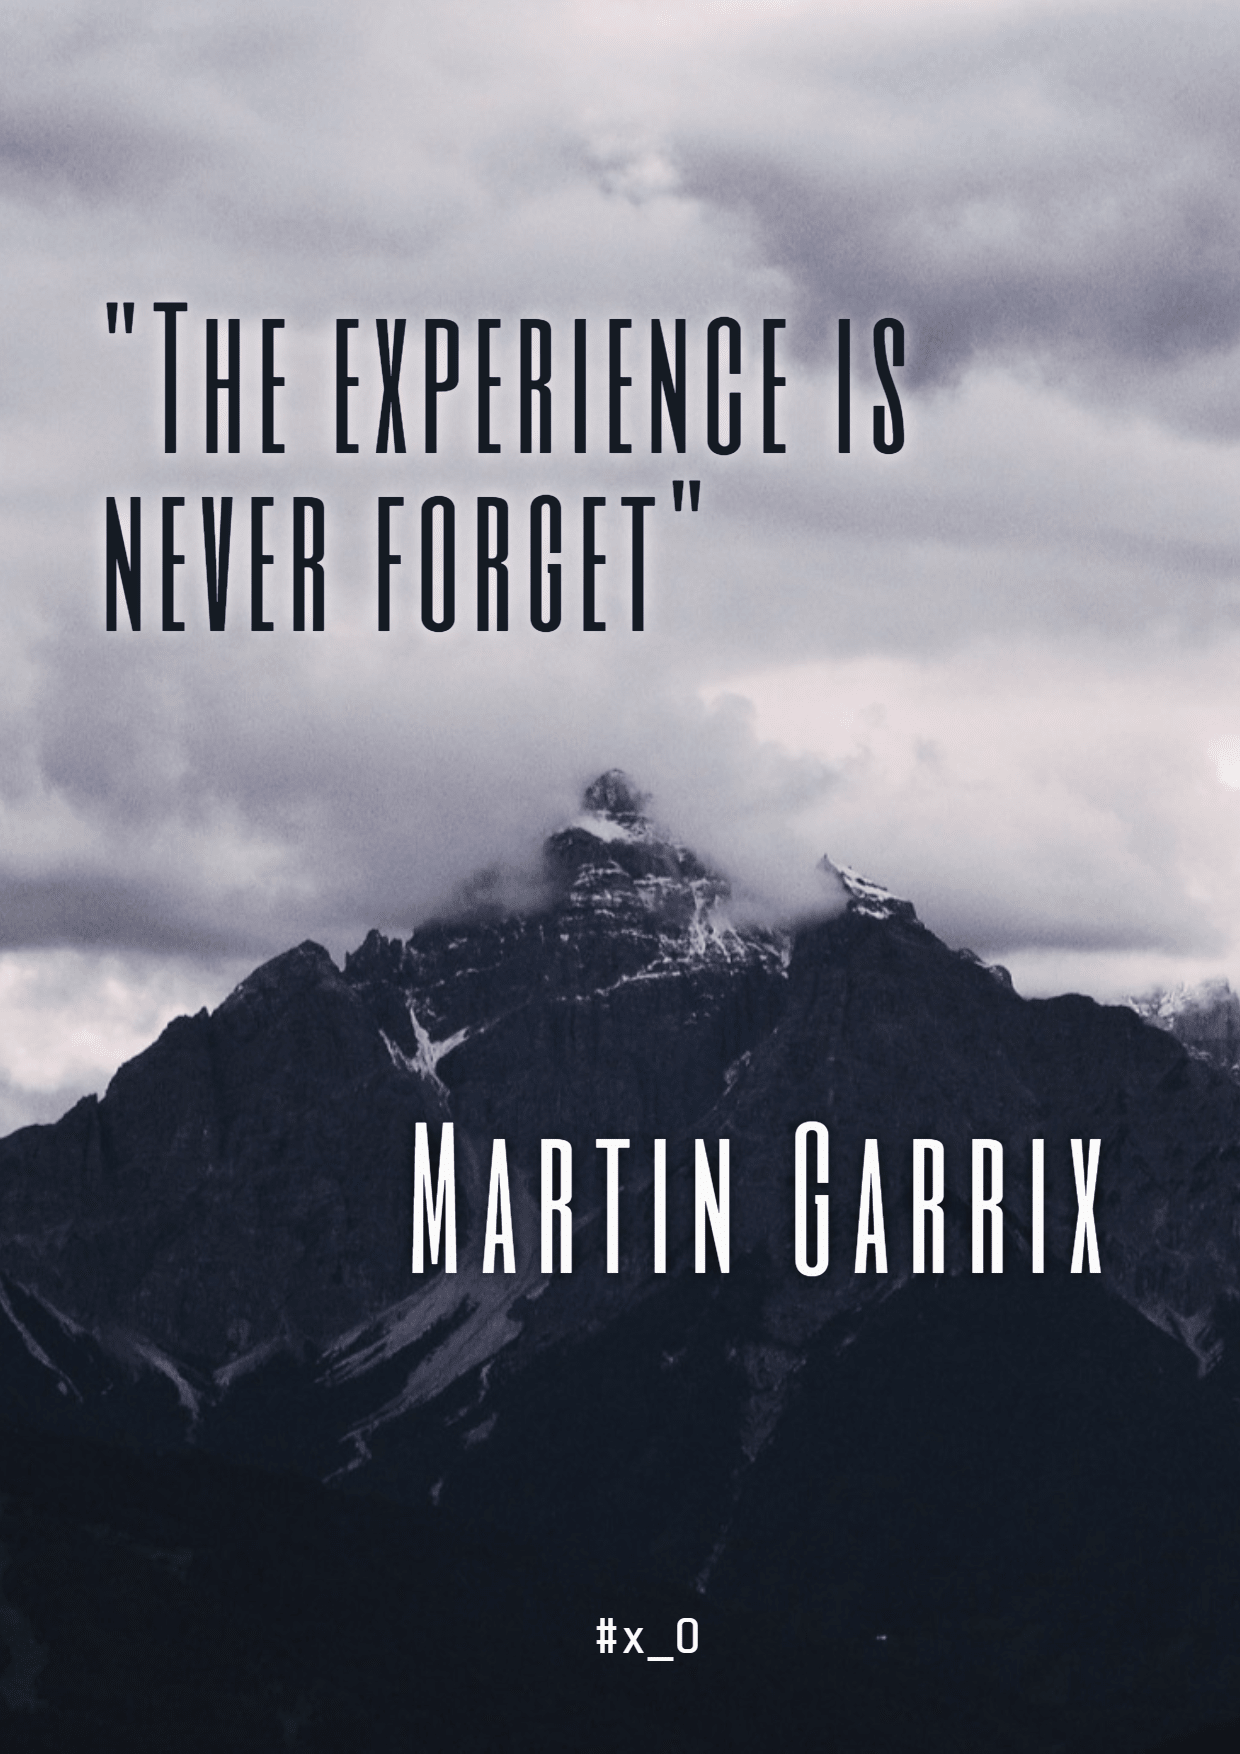 Sky,                Cloud,                Text,                Font,                Atmosphere,                Mountain,                Geological,                Phenomenon,                Range,                Black,                And,                White,                Quote,                 Free Image